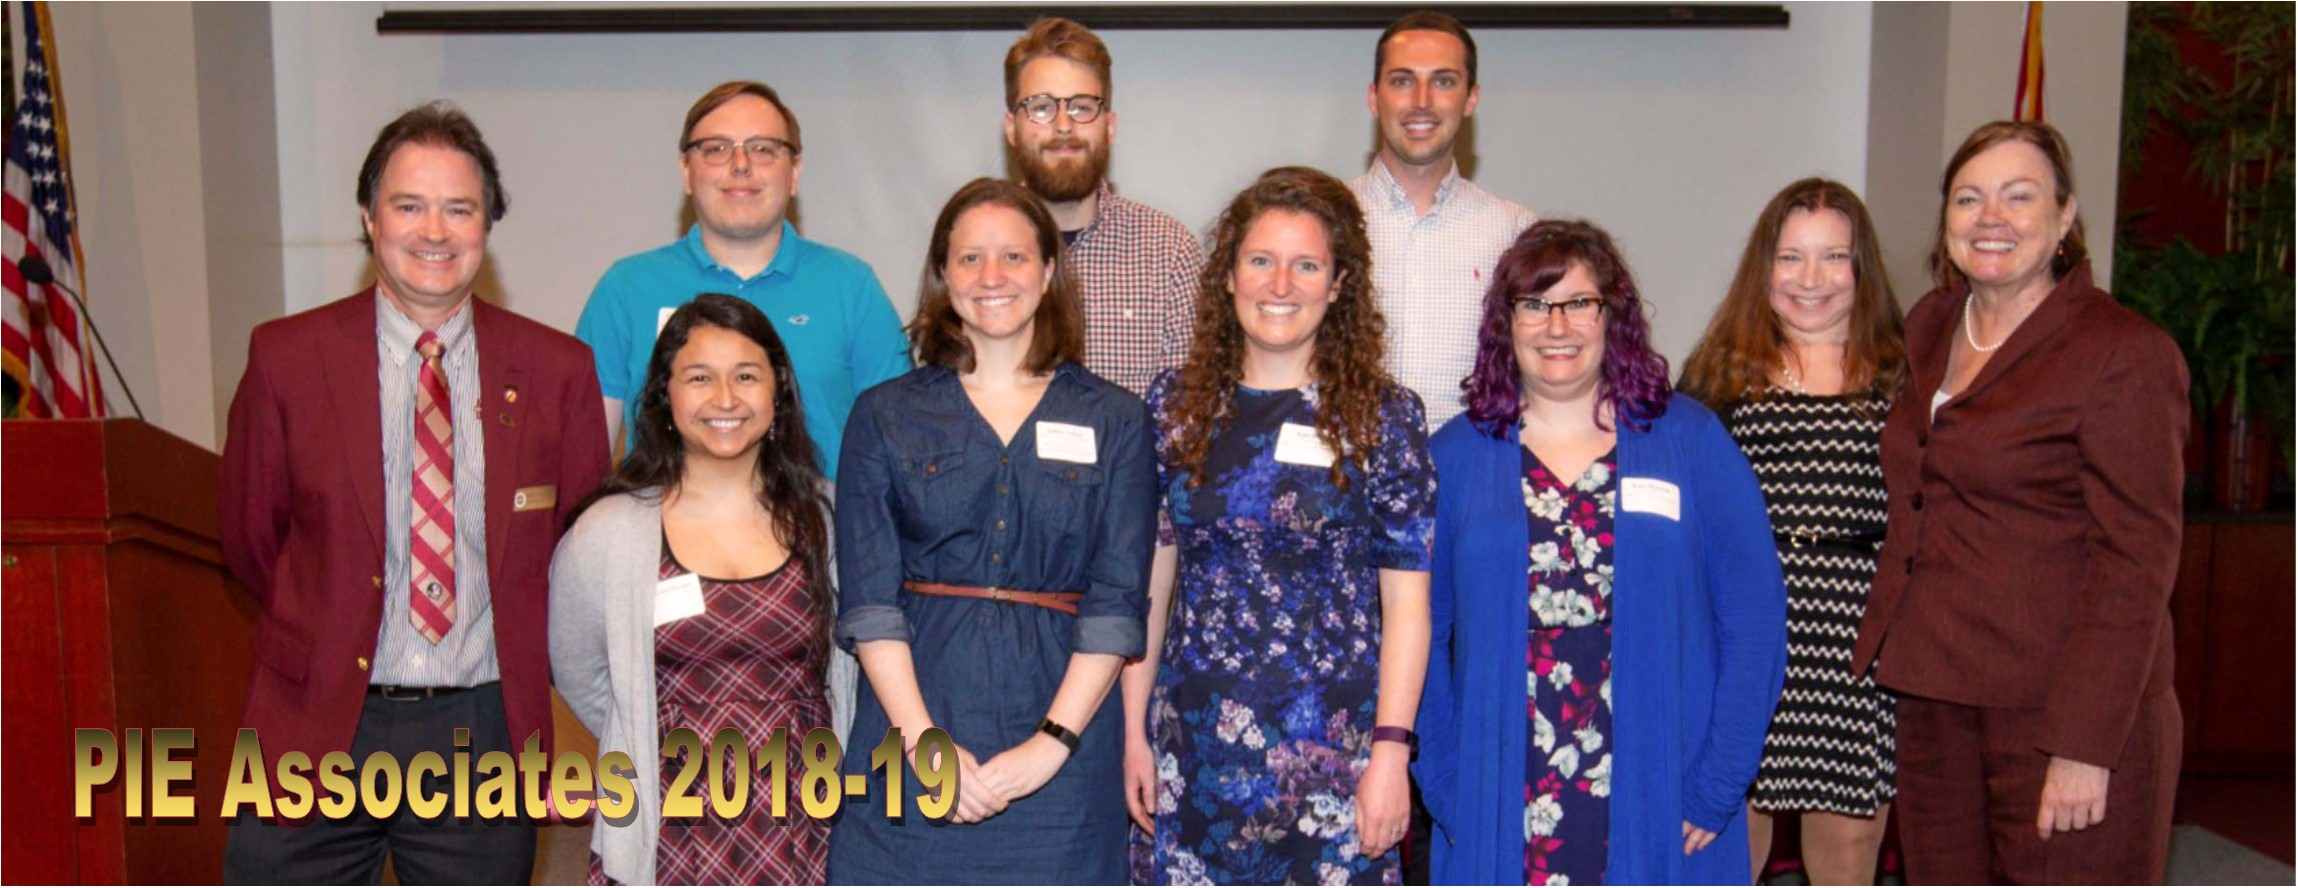 PIE Associates 2018-19 at the Celebration of Graduate Student Excellence